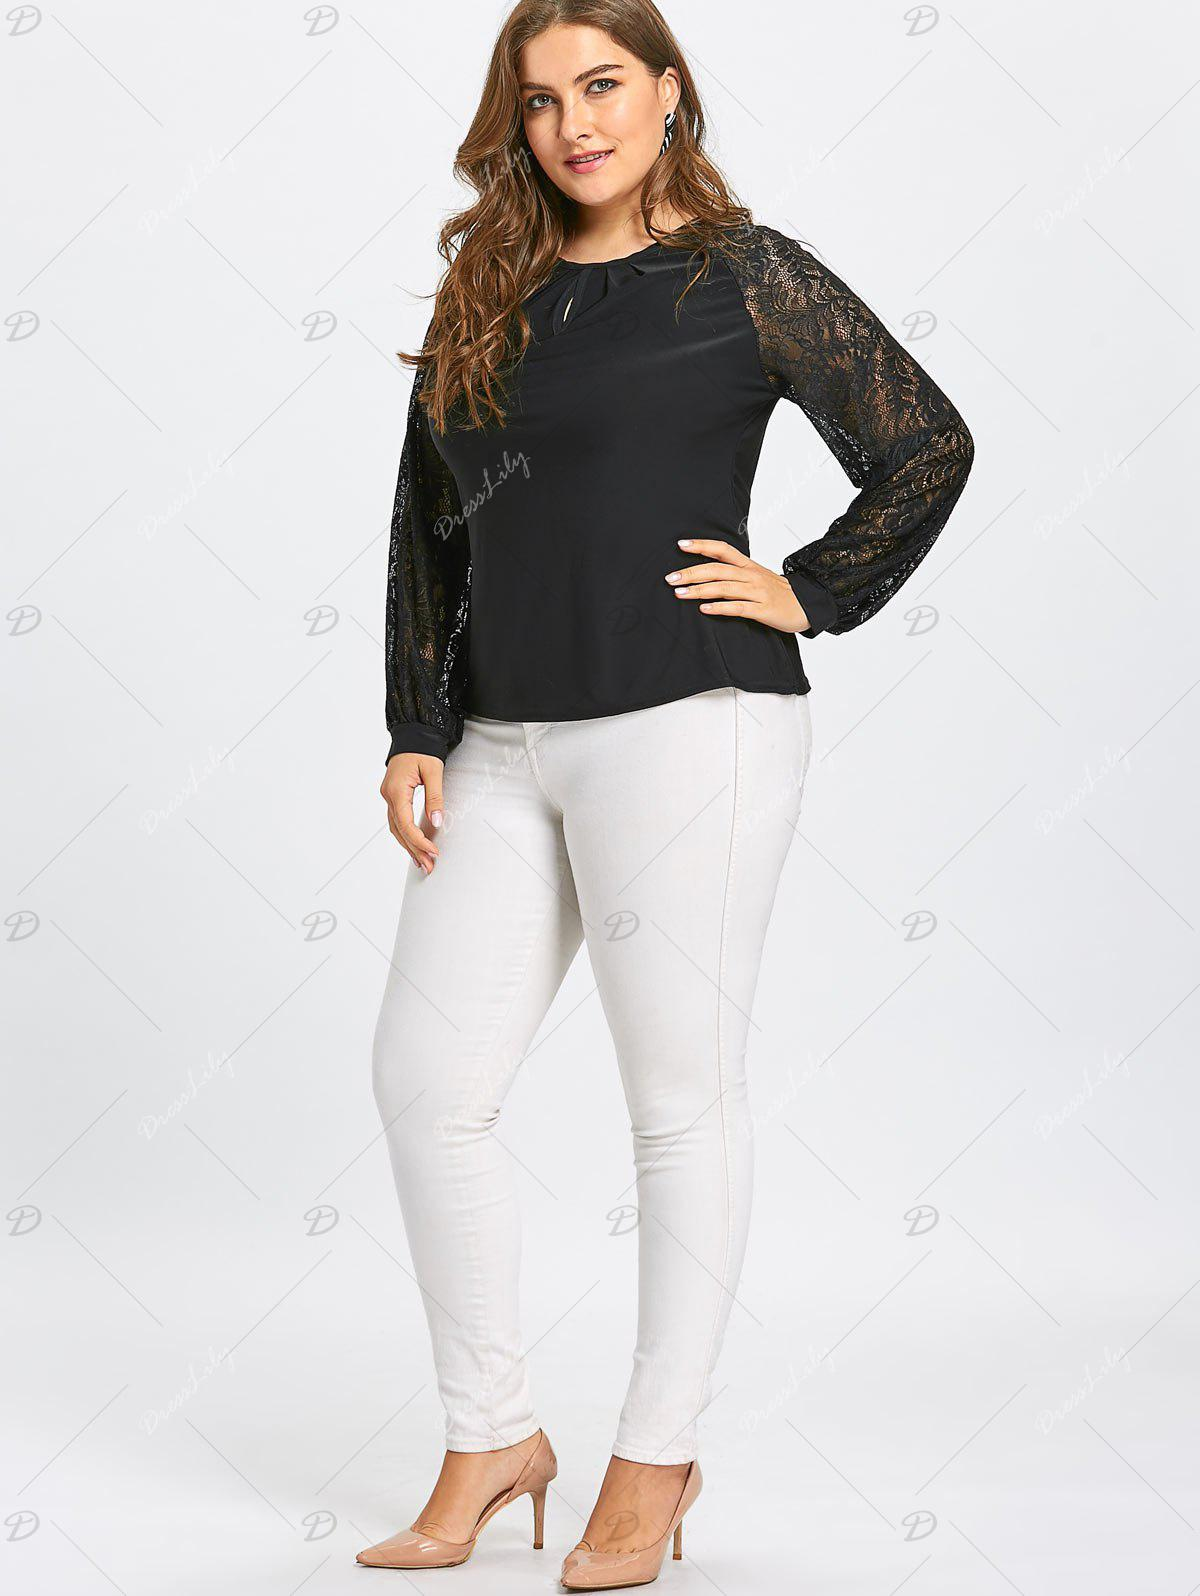 Crinkle Plus Size Sheer Long Lace Sleeve T-shirt - BLACK 3XL